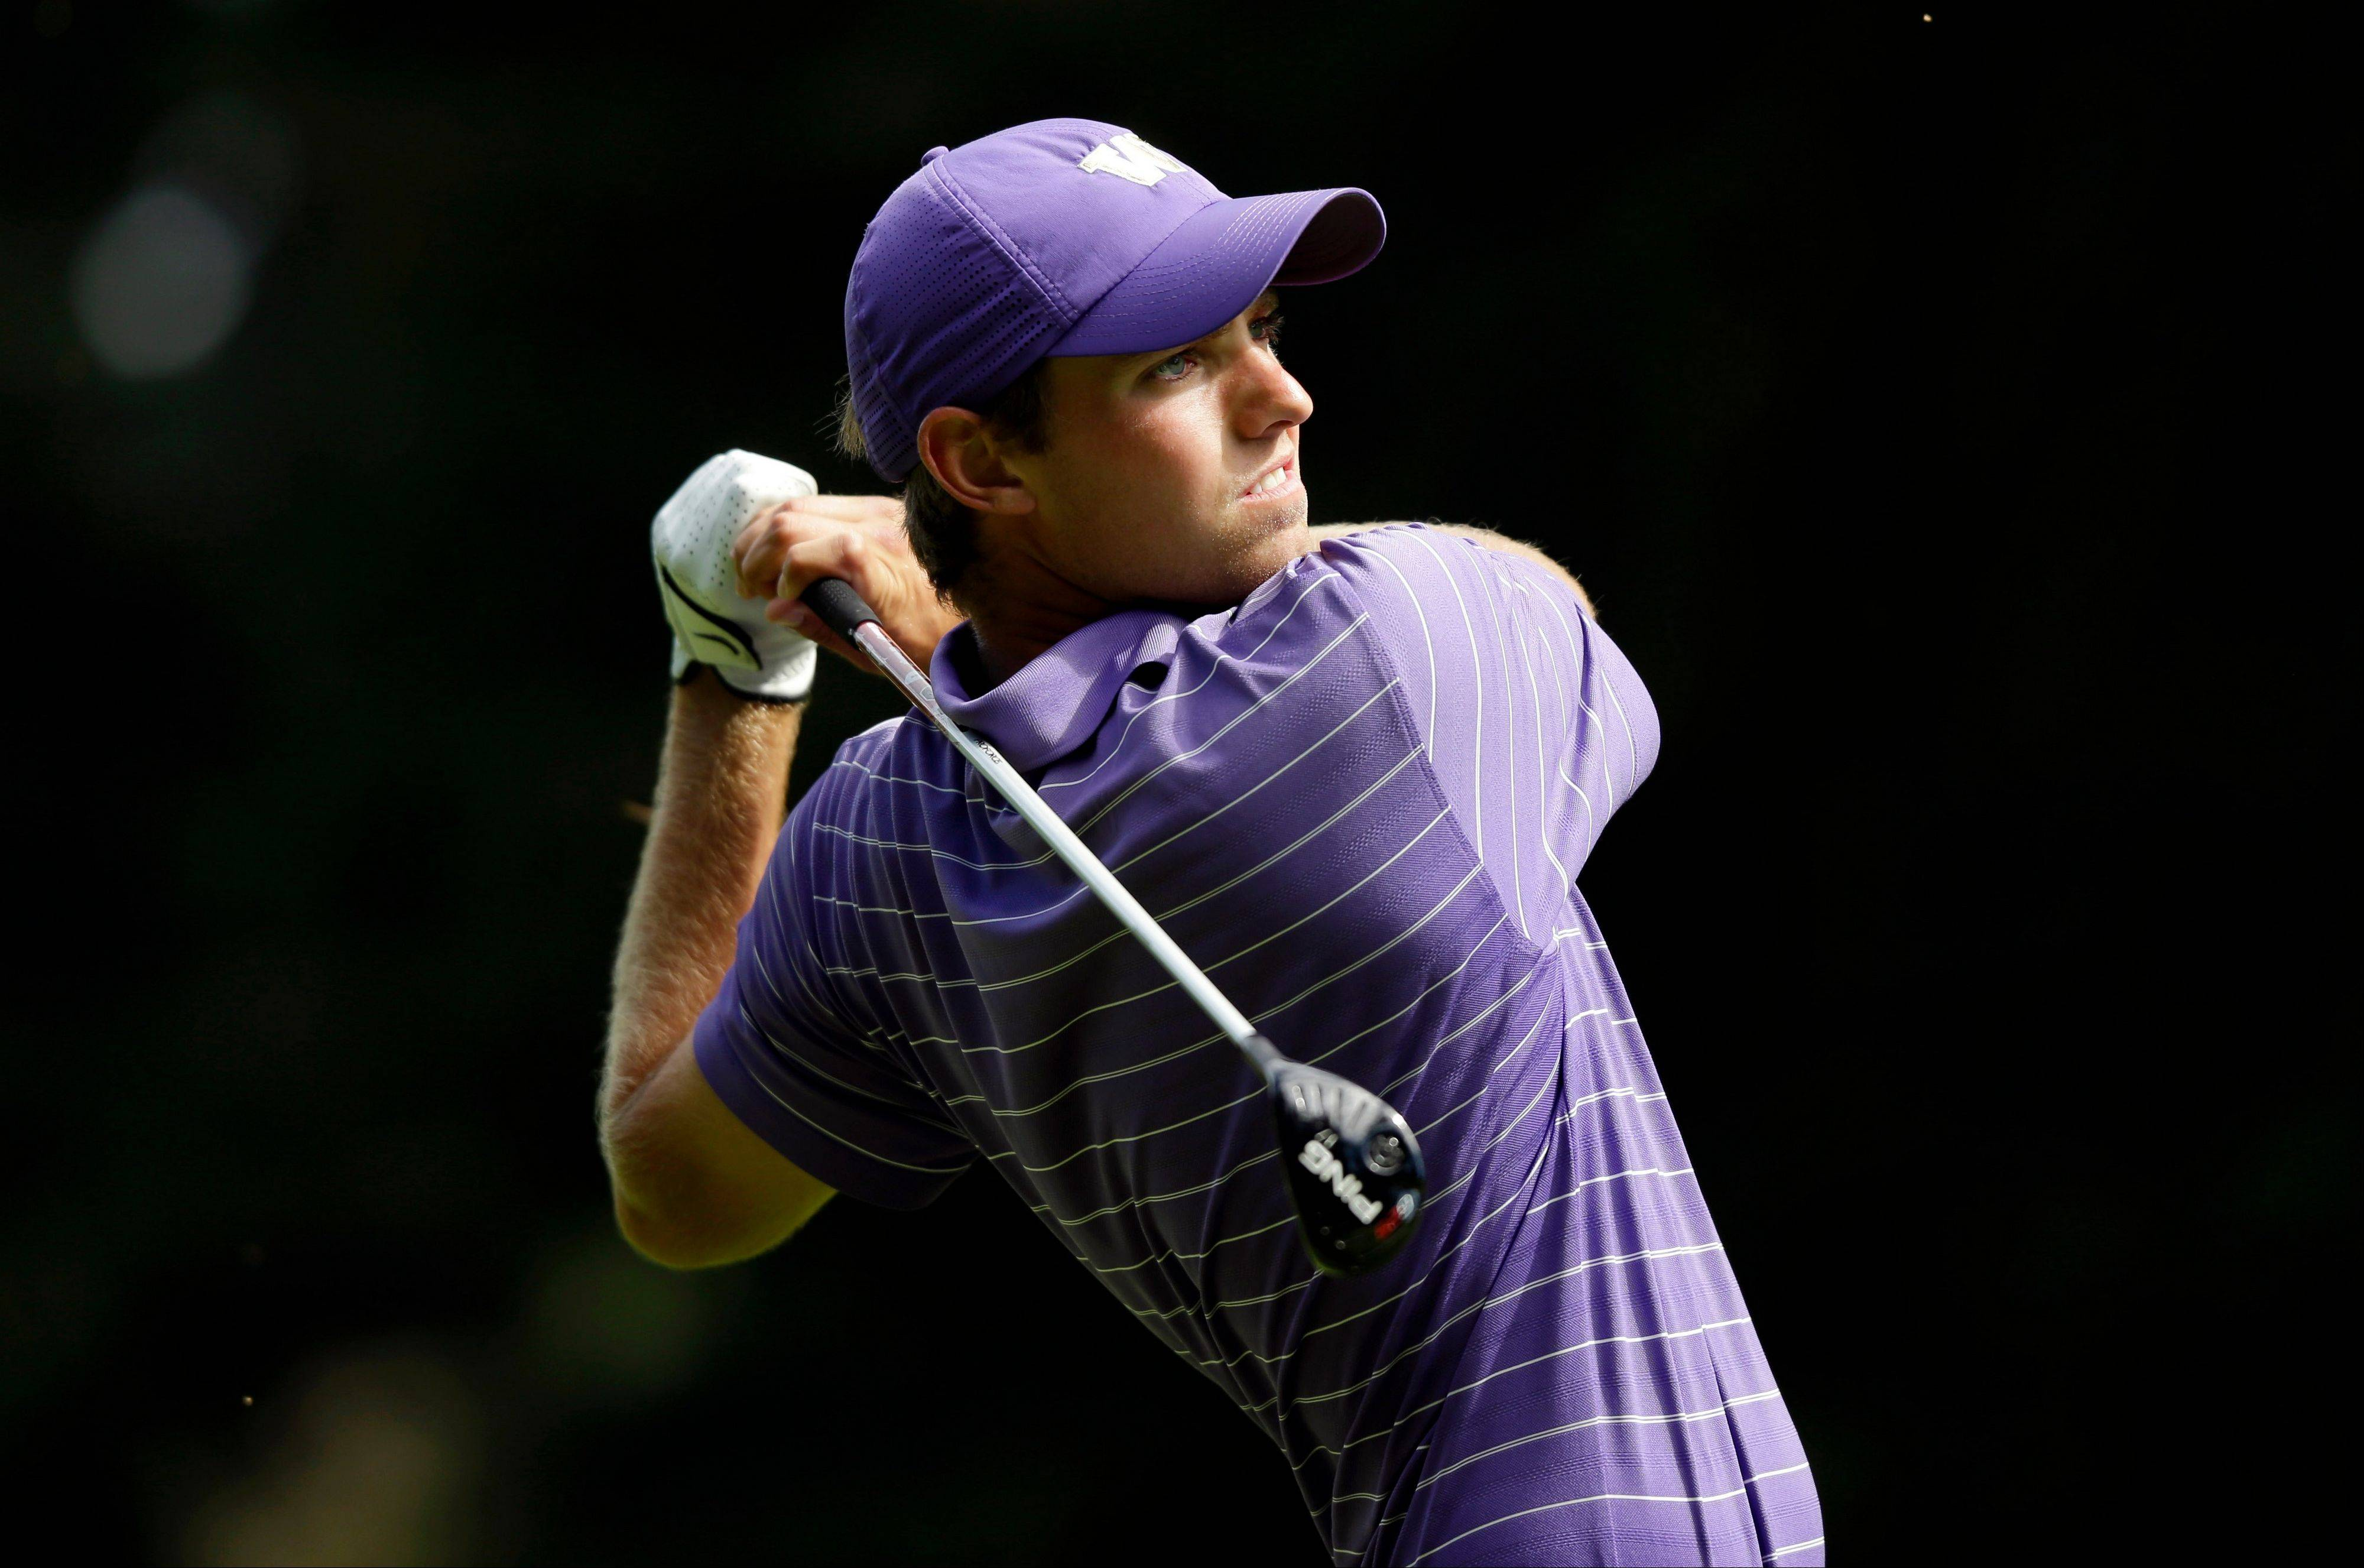 University of Washington golfer Chris Williams is currently ranked as the world's No. 1 amateur golfer. He'll be taking part in the NCAA championships in Atlanta, as will Mike Small's Illini golf team.